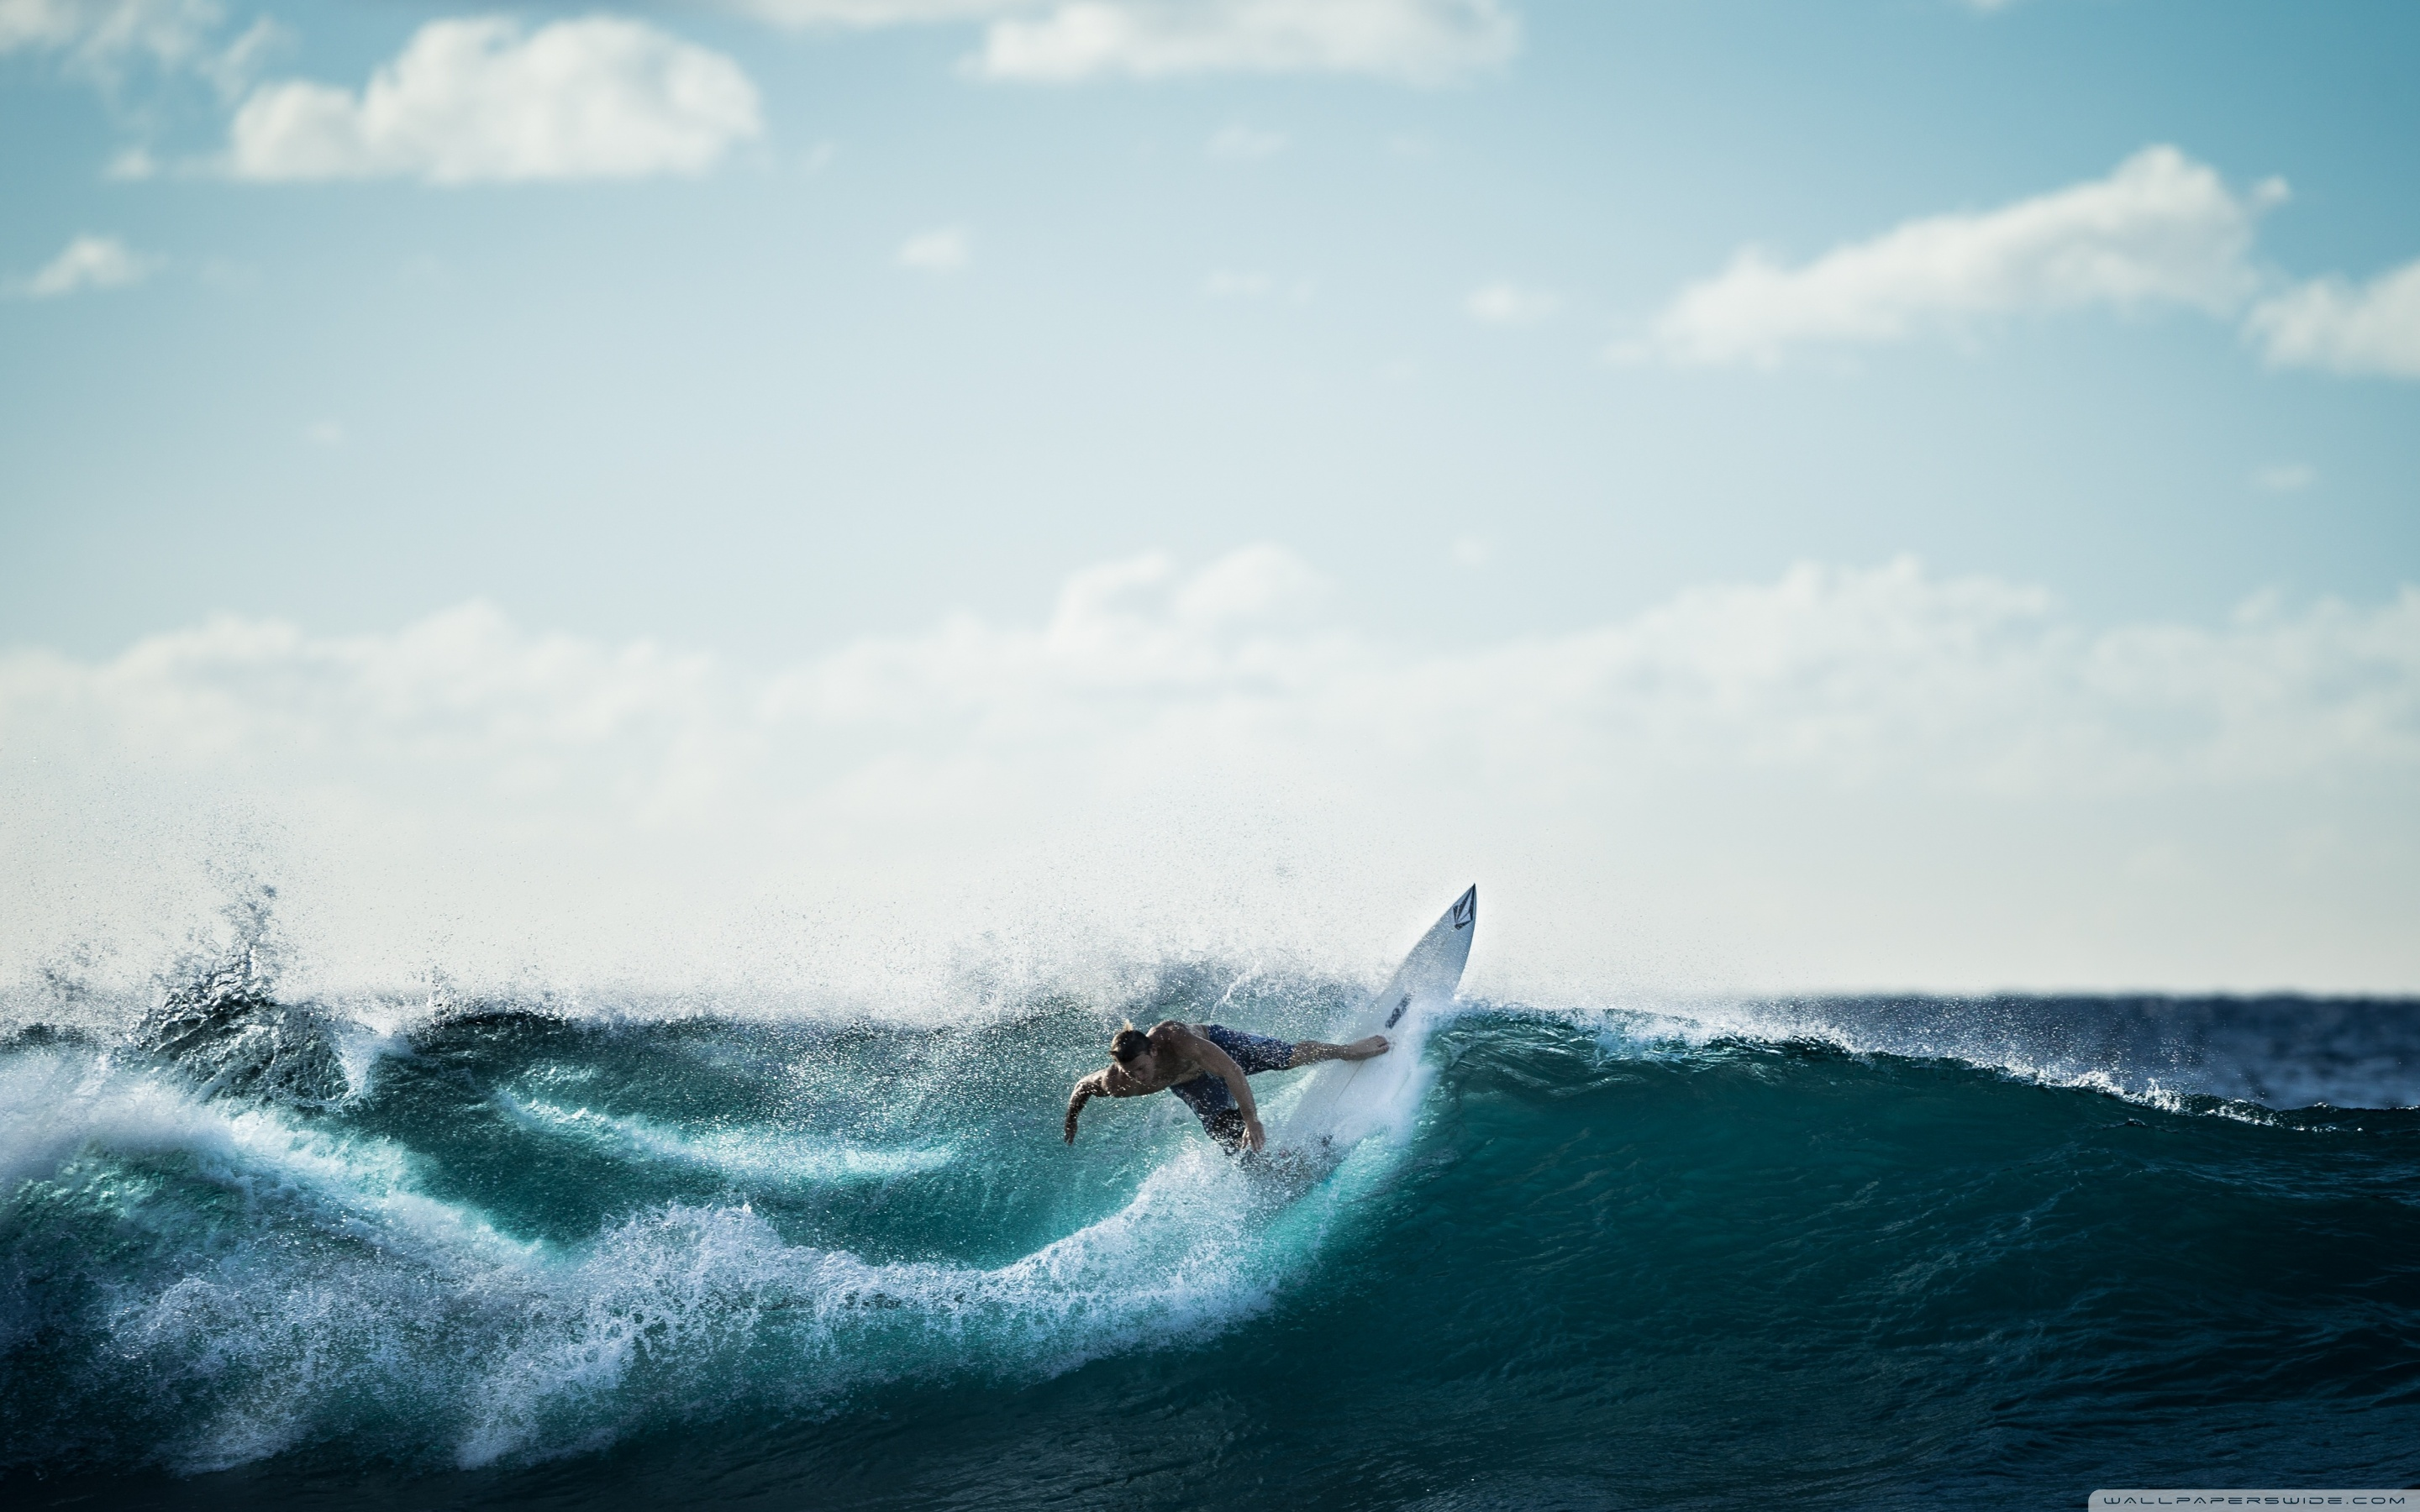 Surf Wallpaper 4K 2880x1800 px Wallperiocom 2880x1800